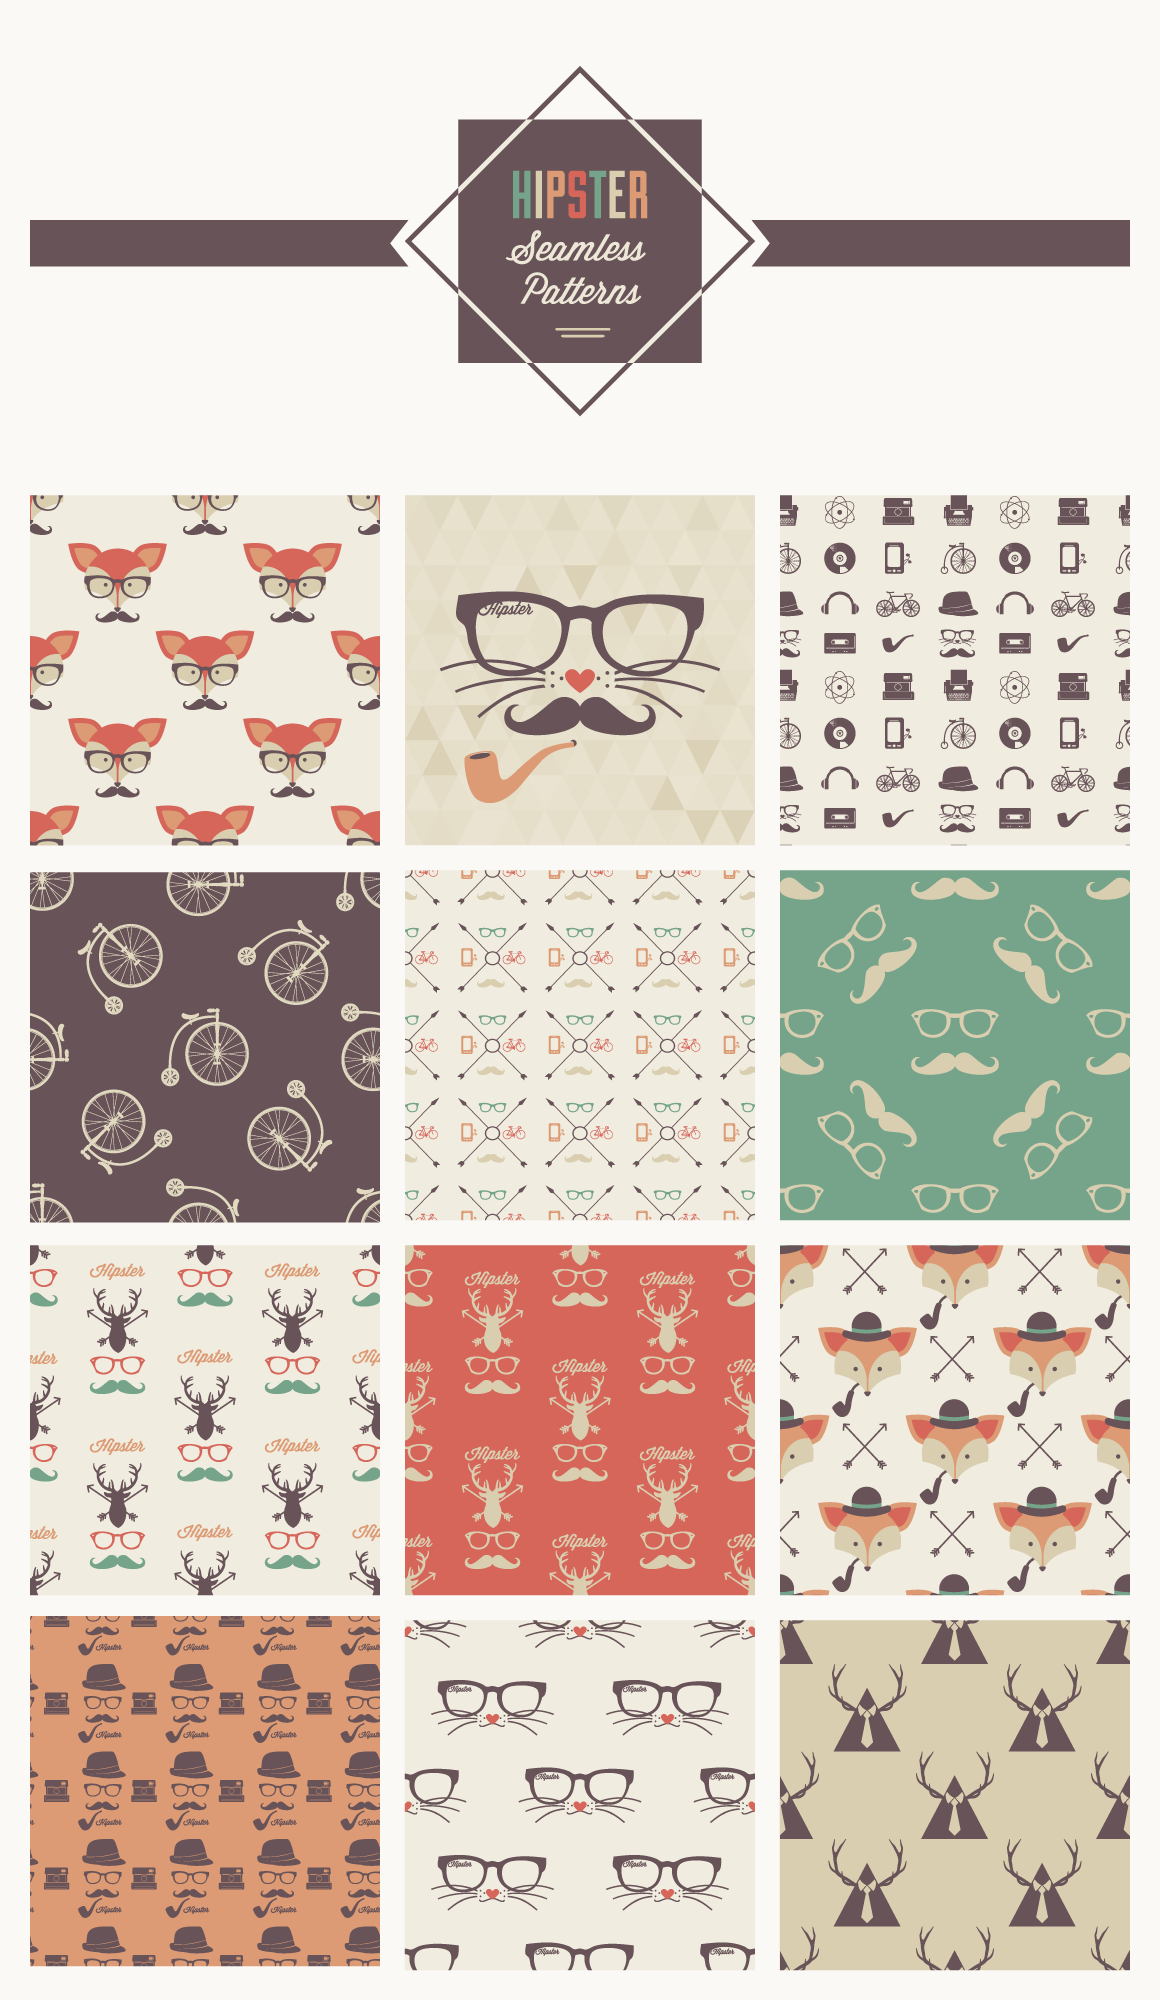 Free Hipster Seamless Patterns from Vecteezy | GraphicsFuel.com